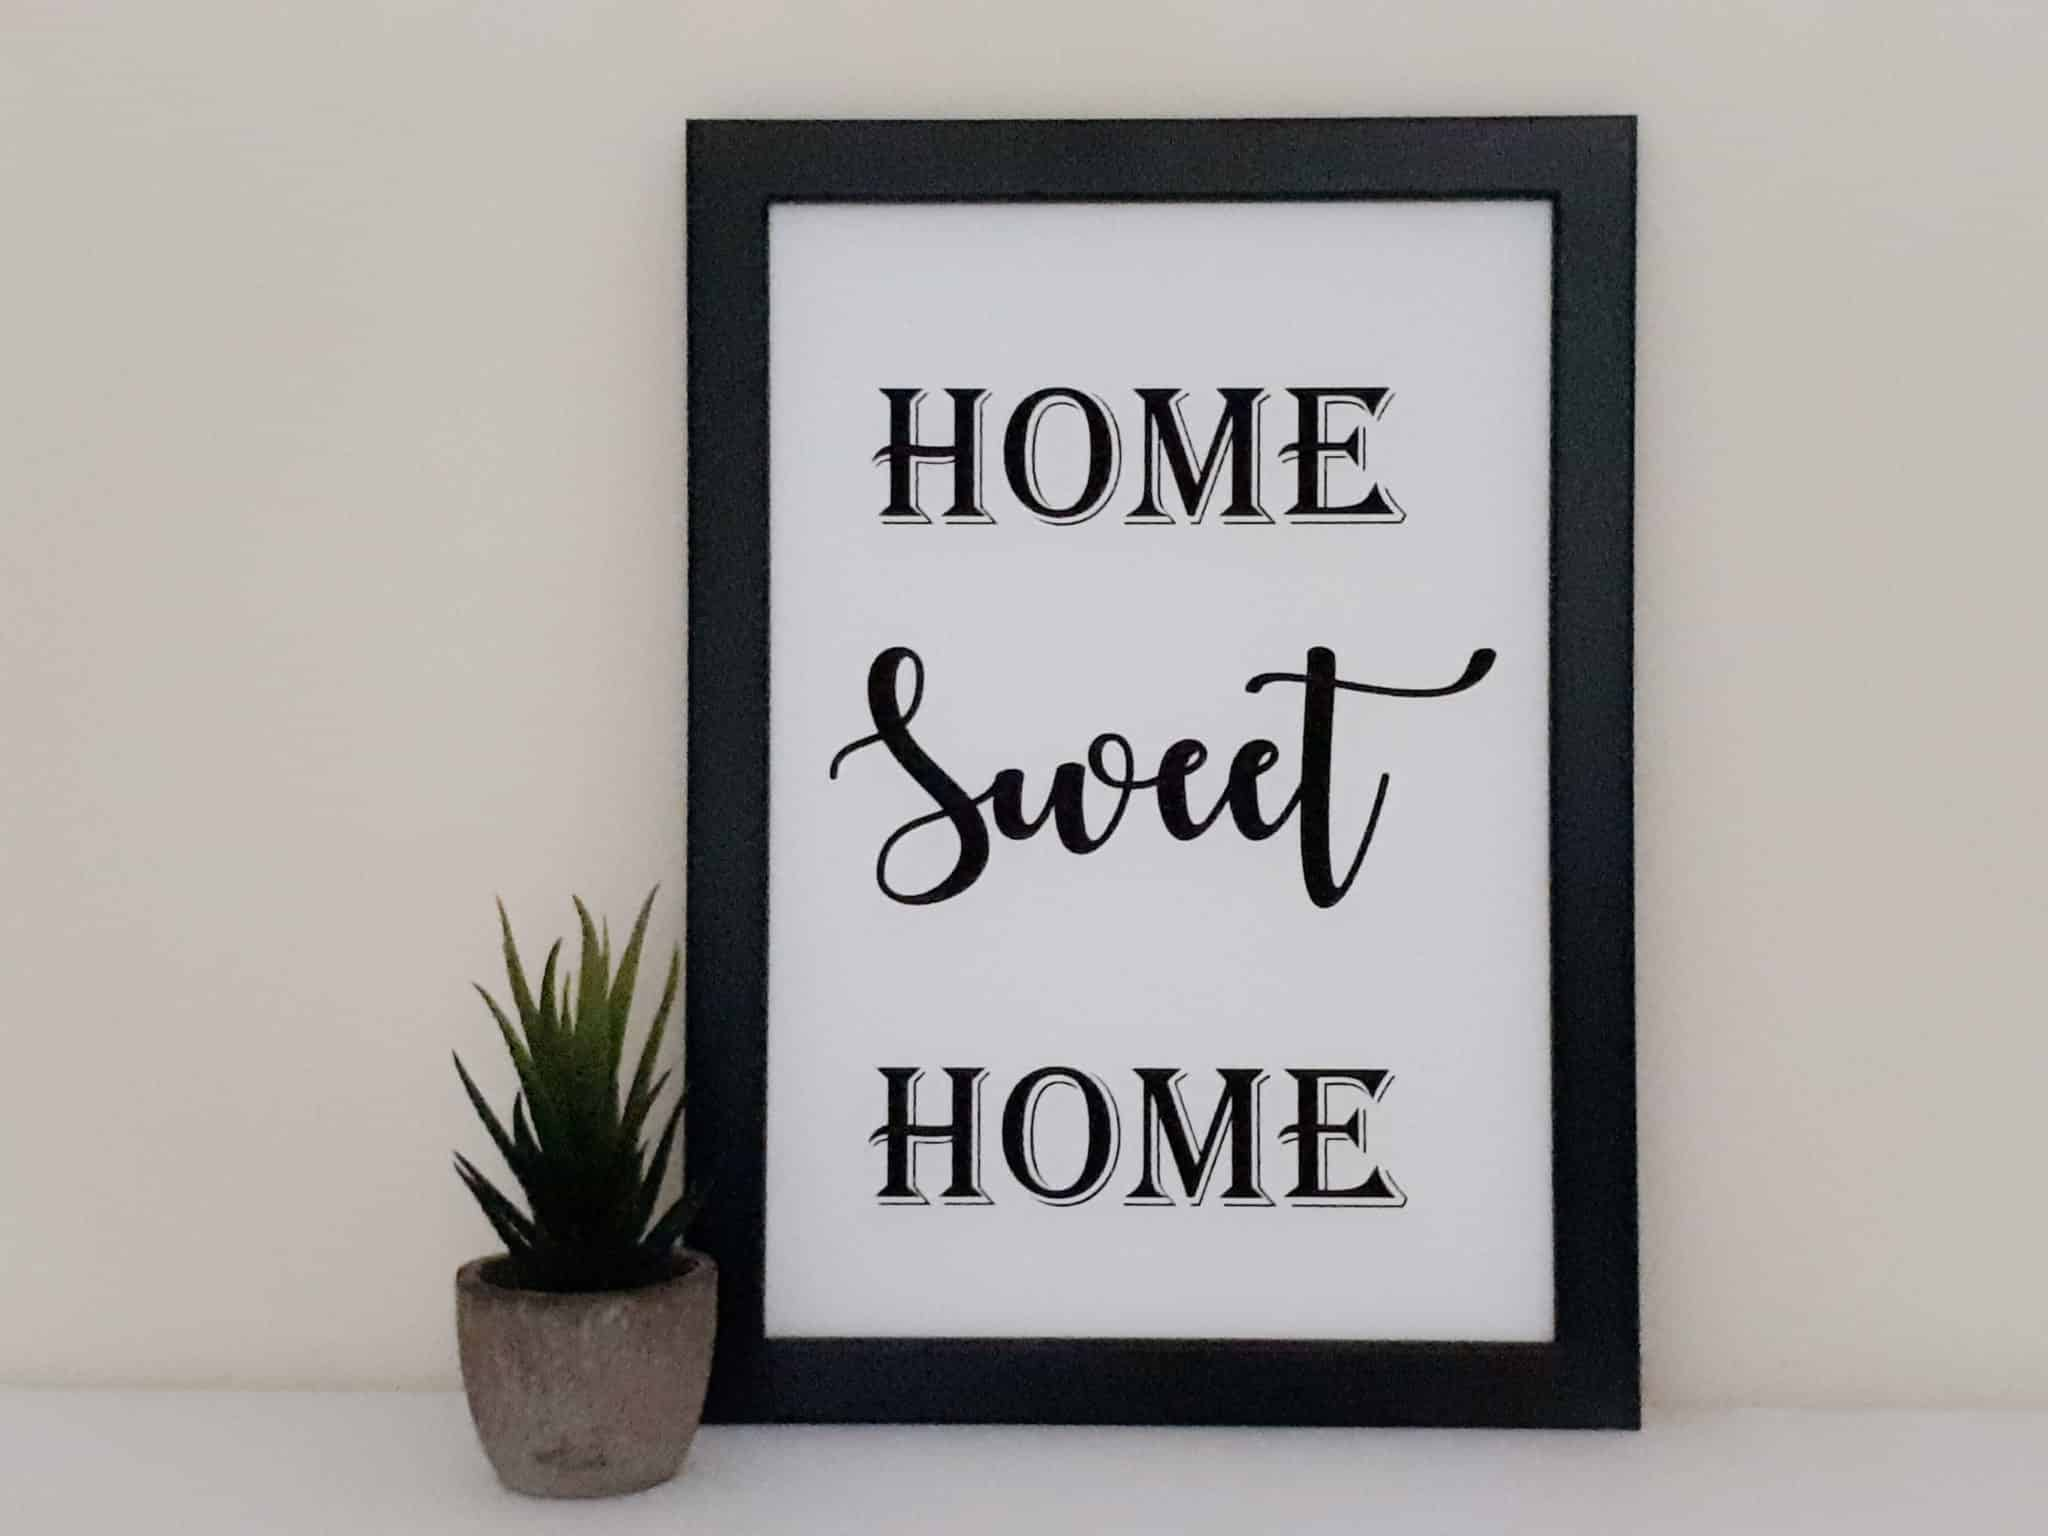 Home Sweet Home Frame Unique Personalised Gifts Free Uk Delivery